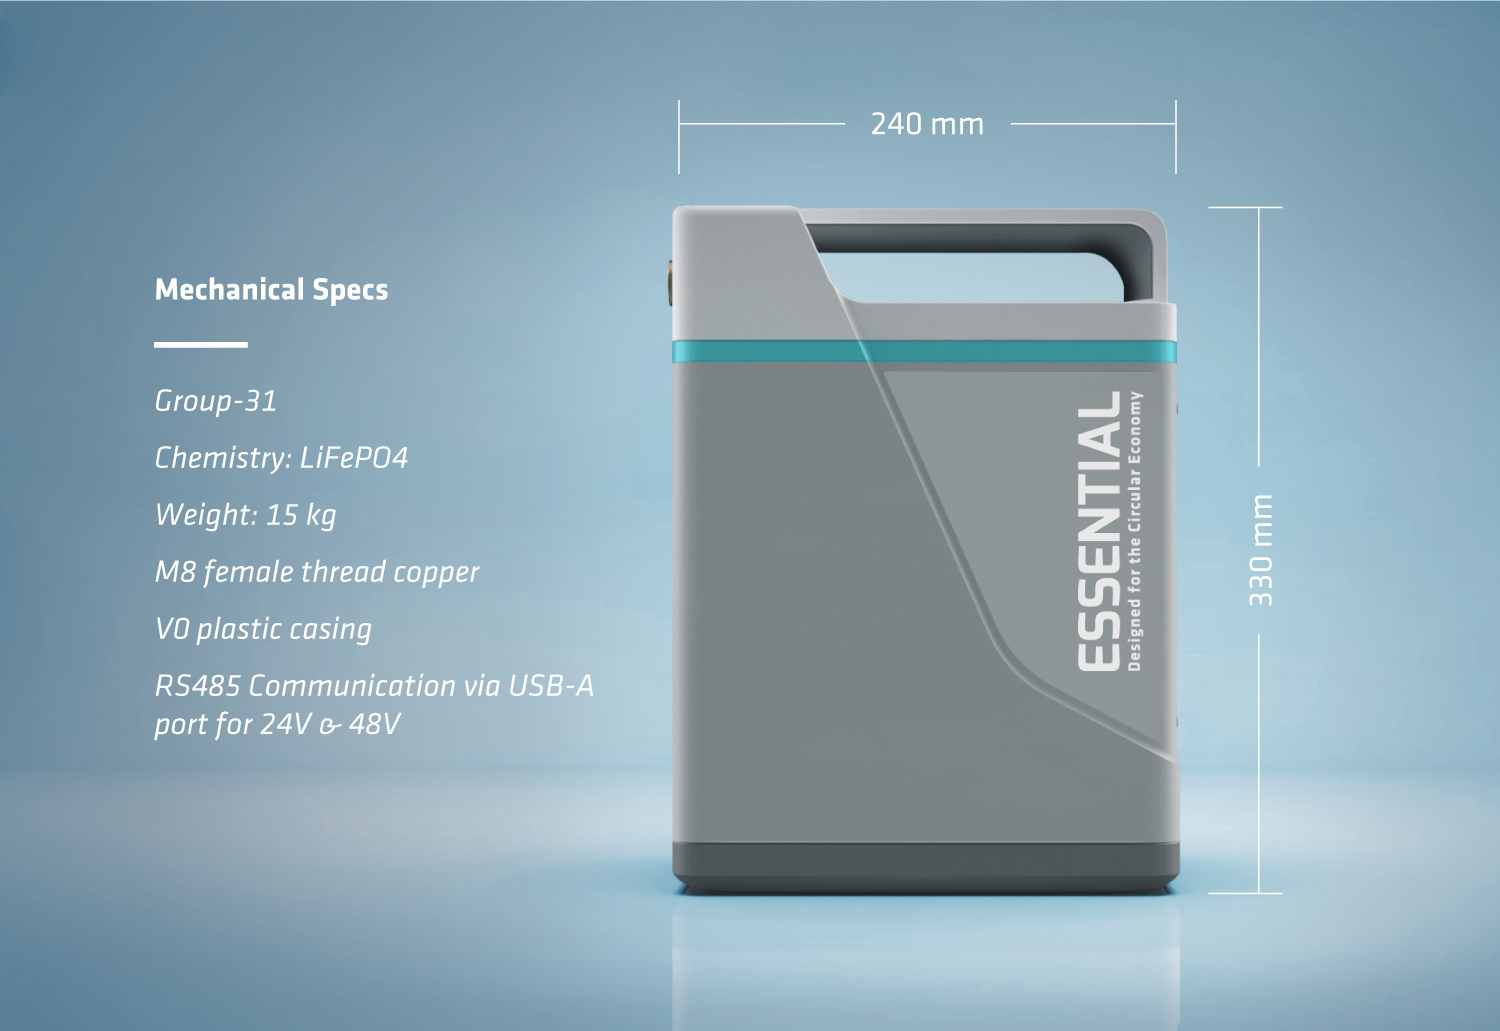 The Essential is a type 31 lithium-ion battery 240x330mm